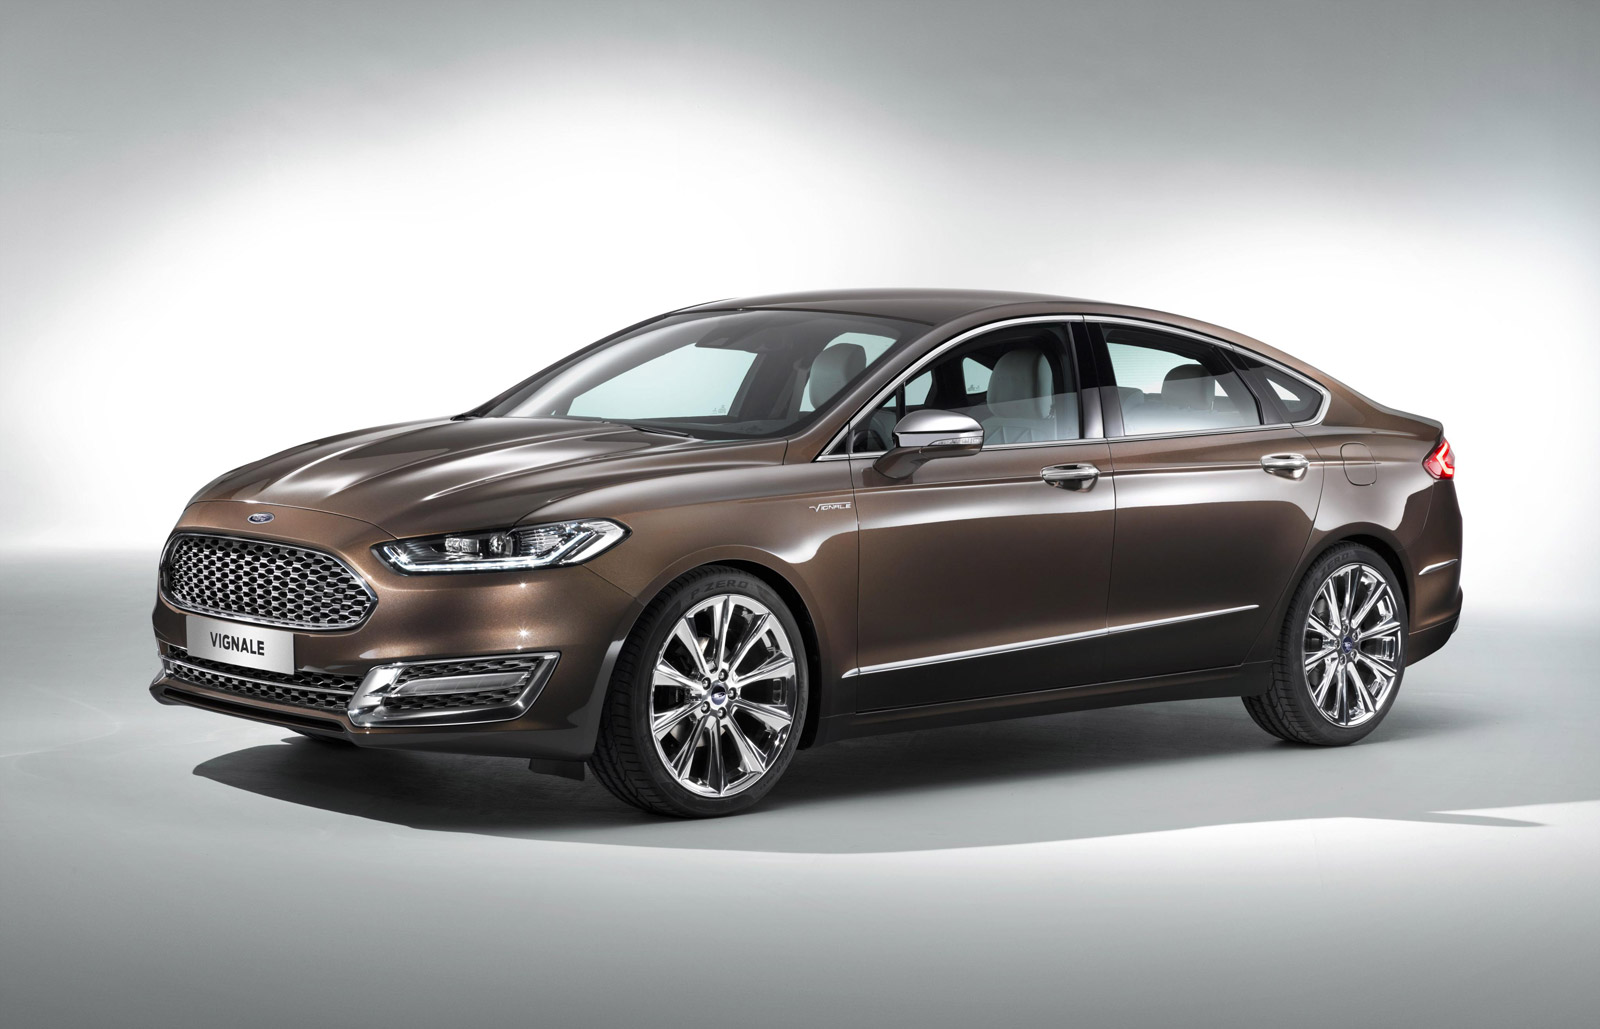 Dsg Mustang >> Ford Going Premium With New Vignale Sub-Brand